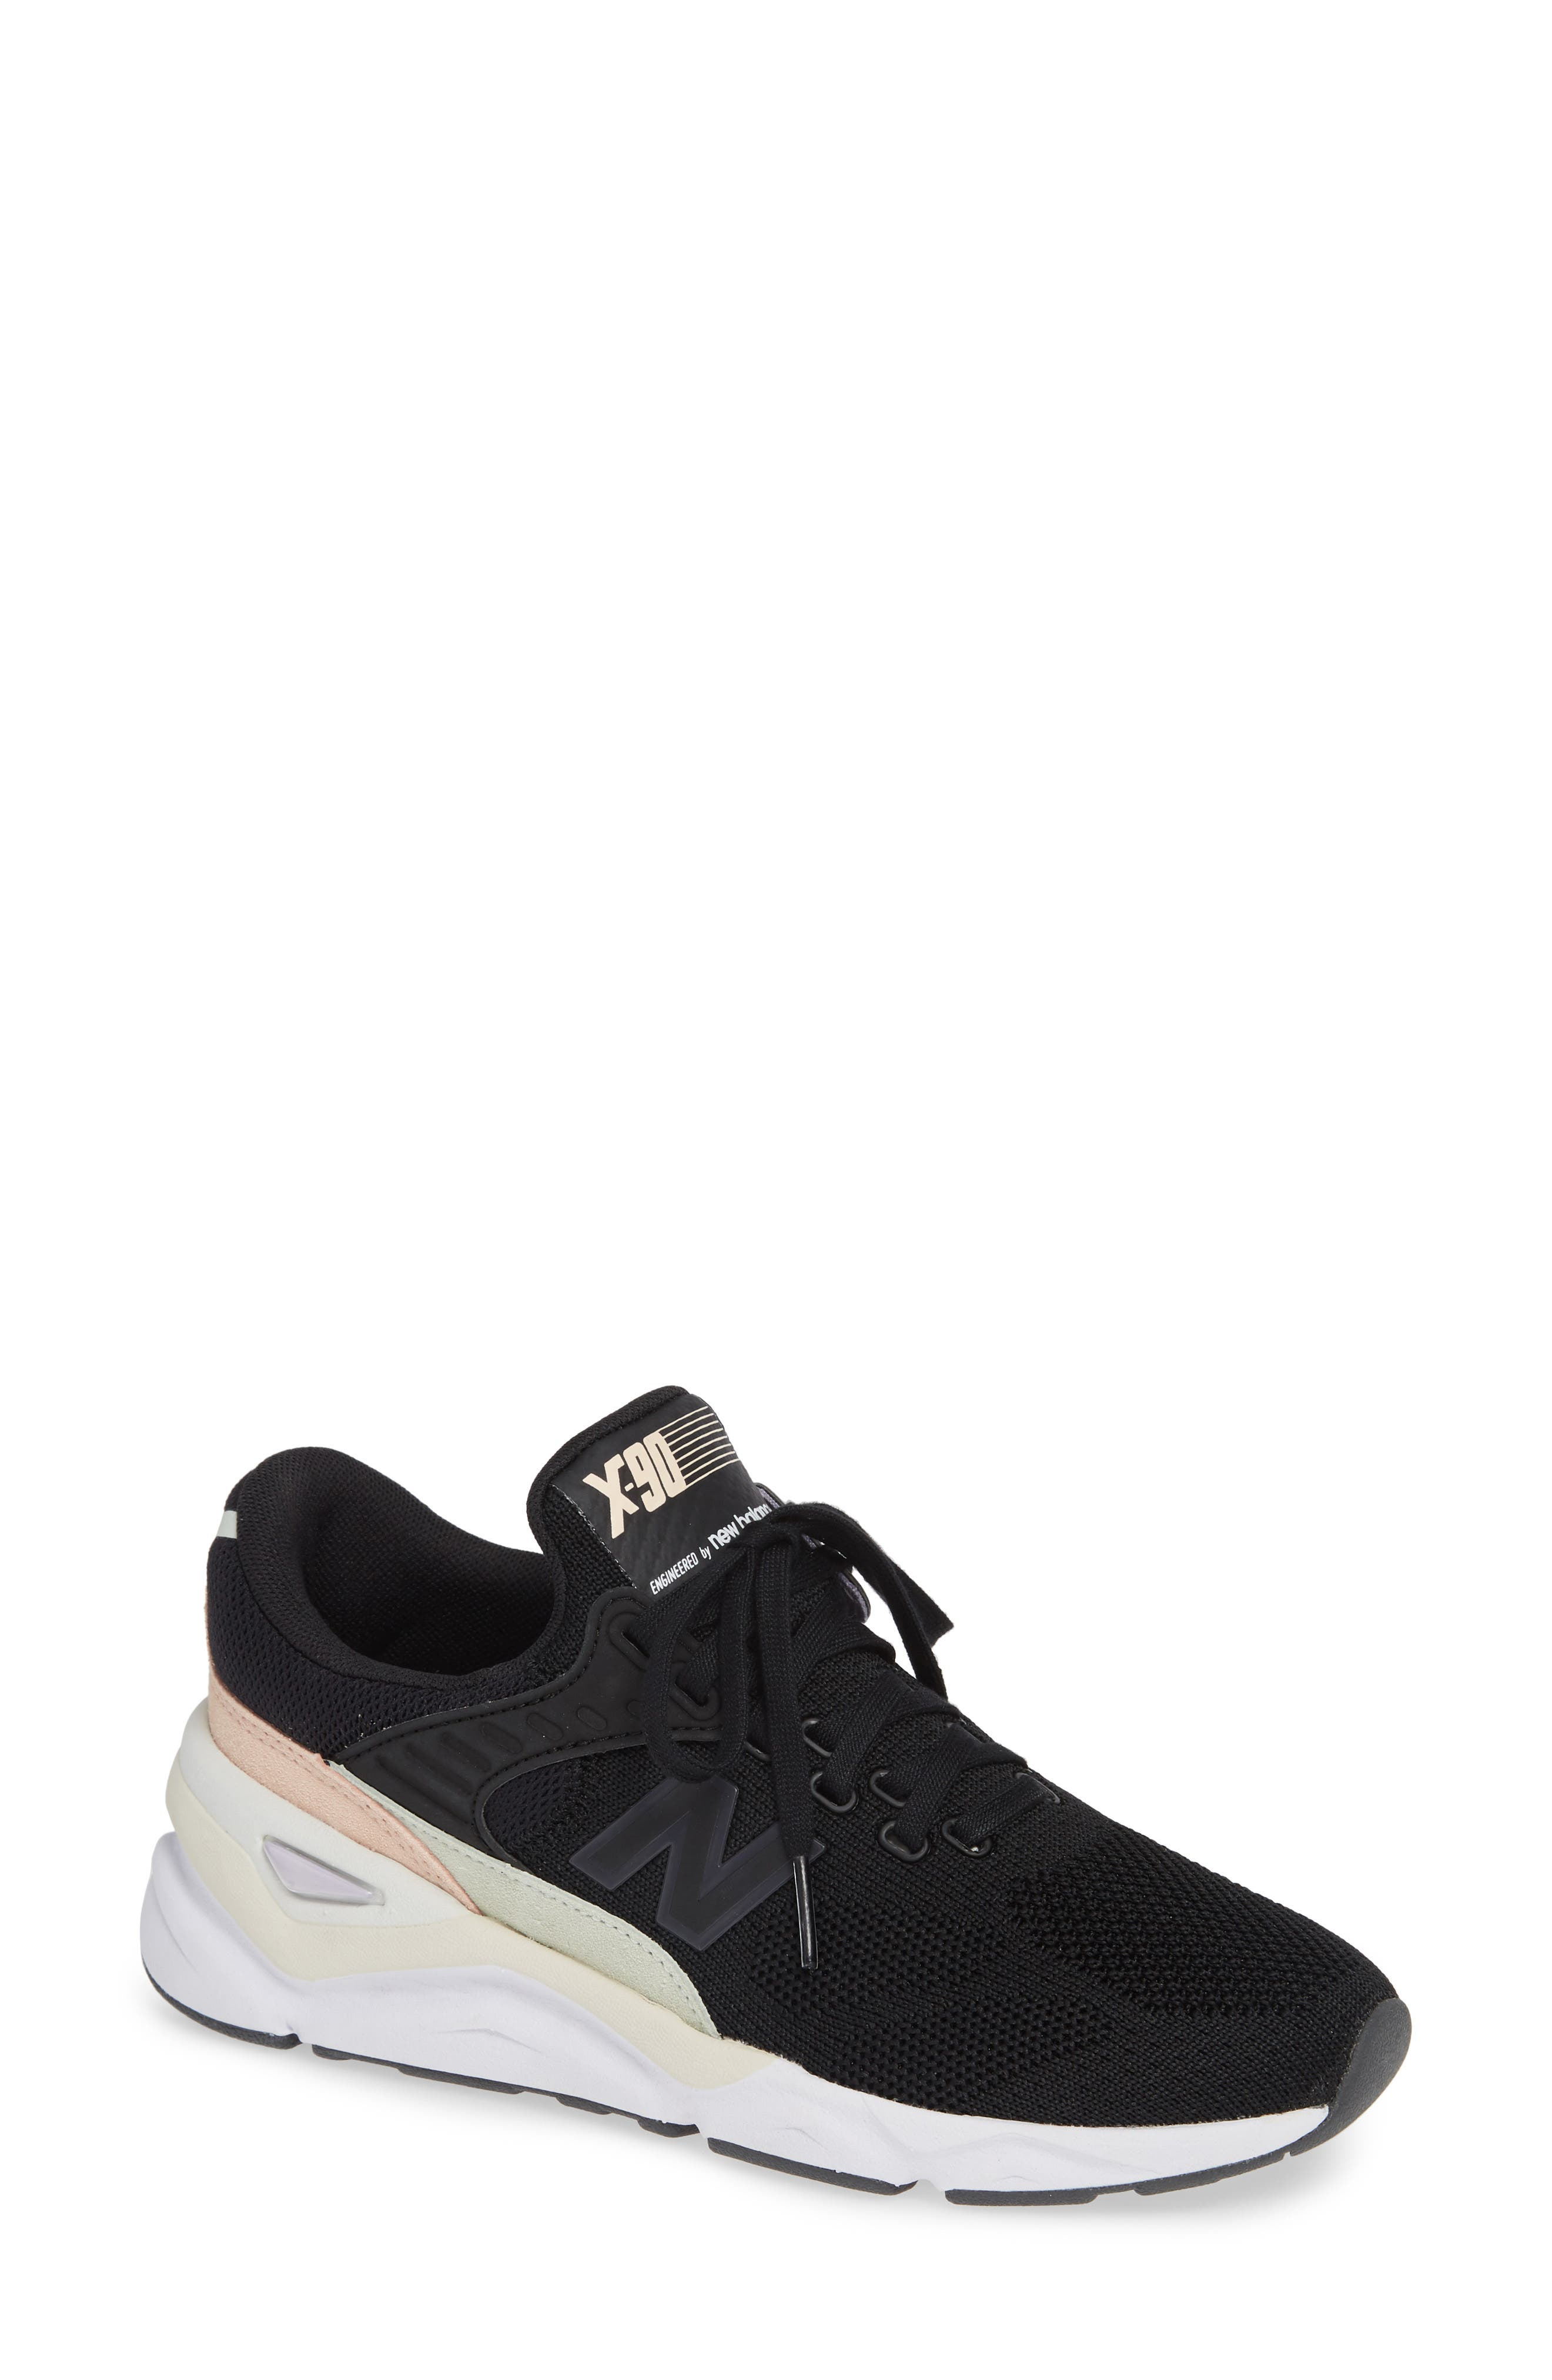 NEW BALANCE X90 Suede Mesh Sneakers in Black